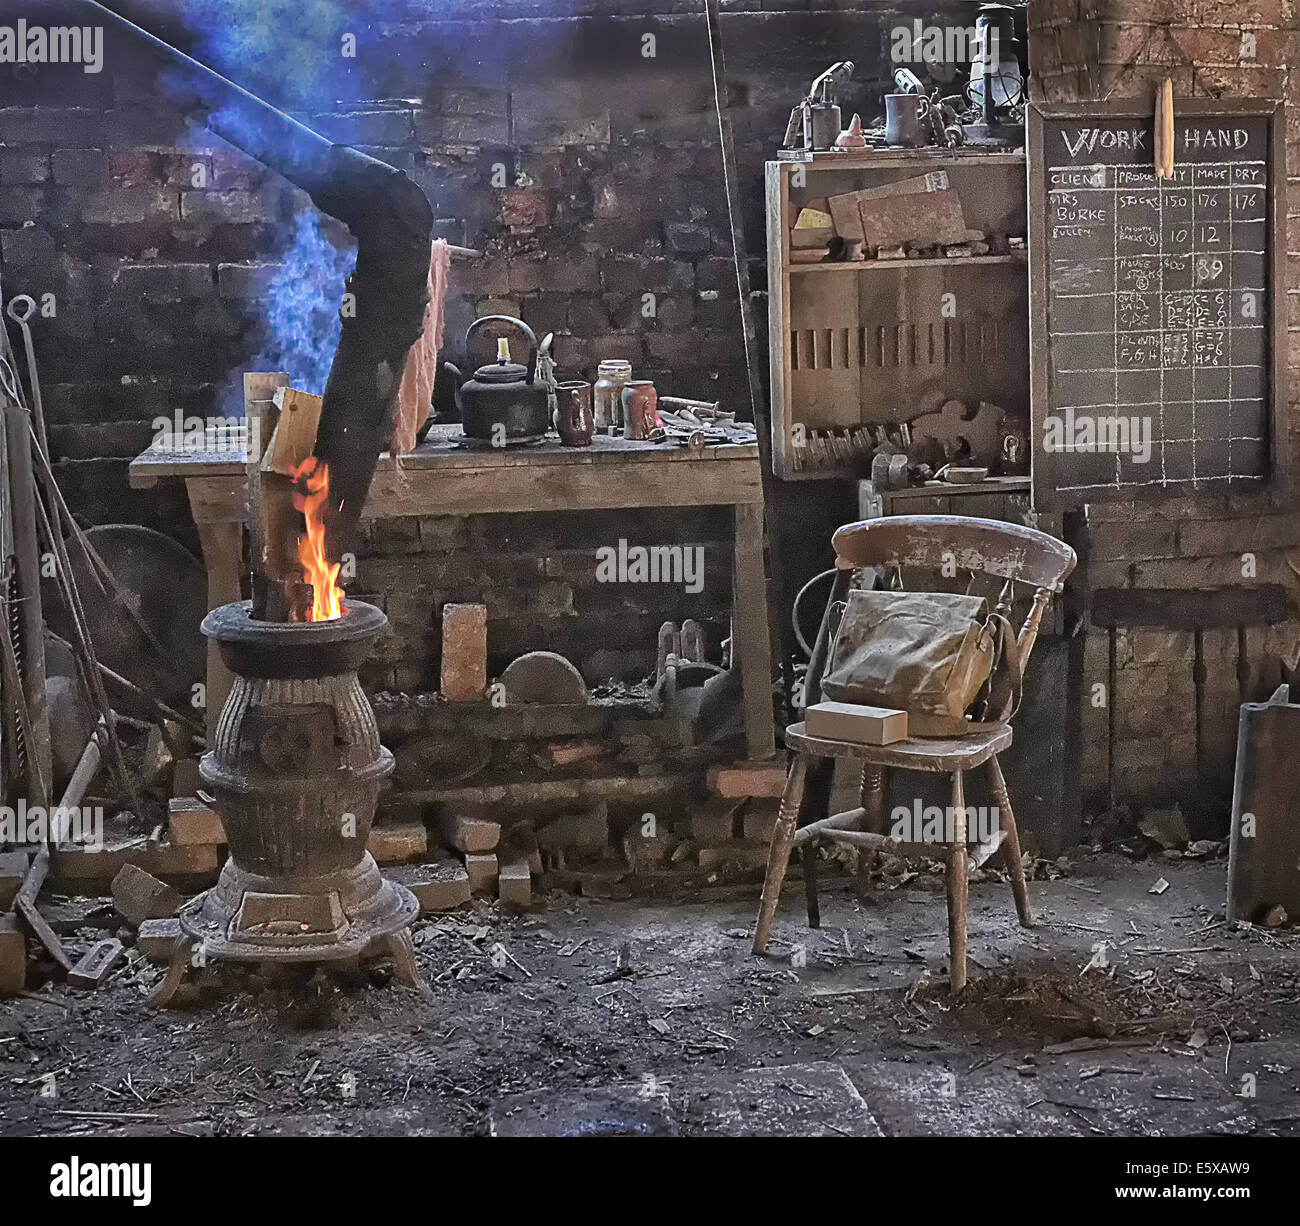 old workshop with pot bellied stove and chair - Stock Image